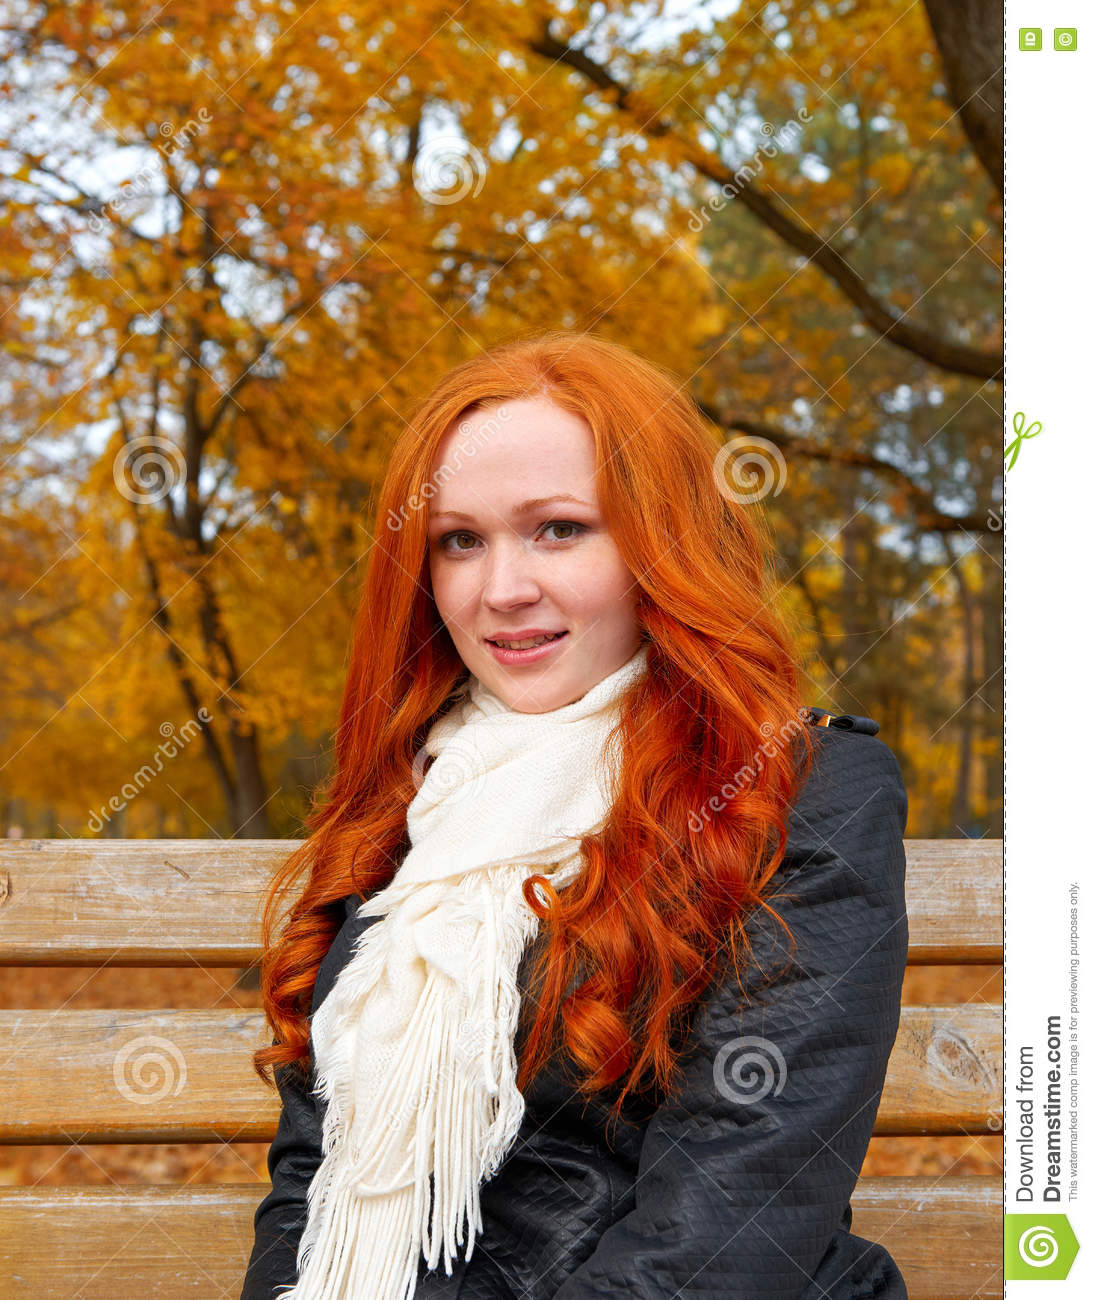 Apologise, redhead on bench